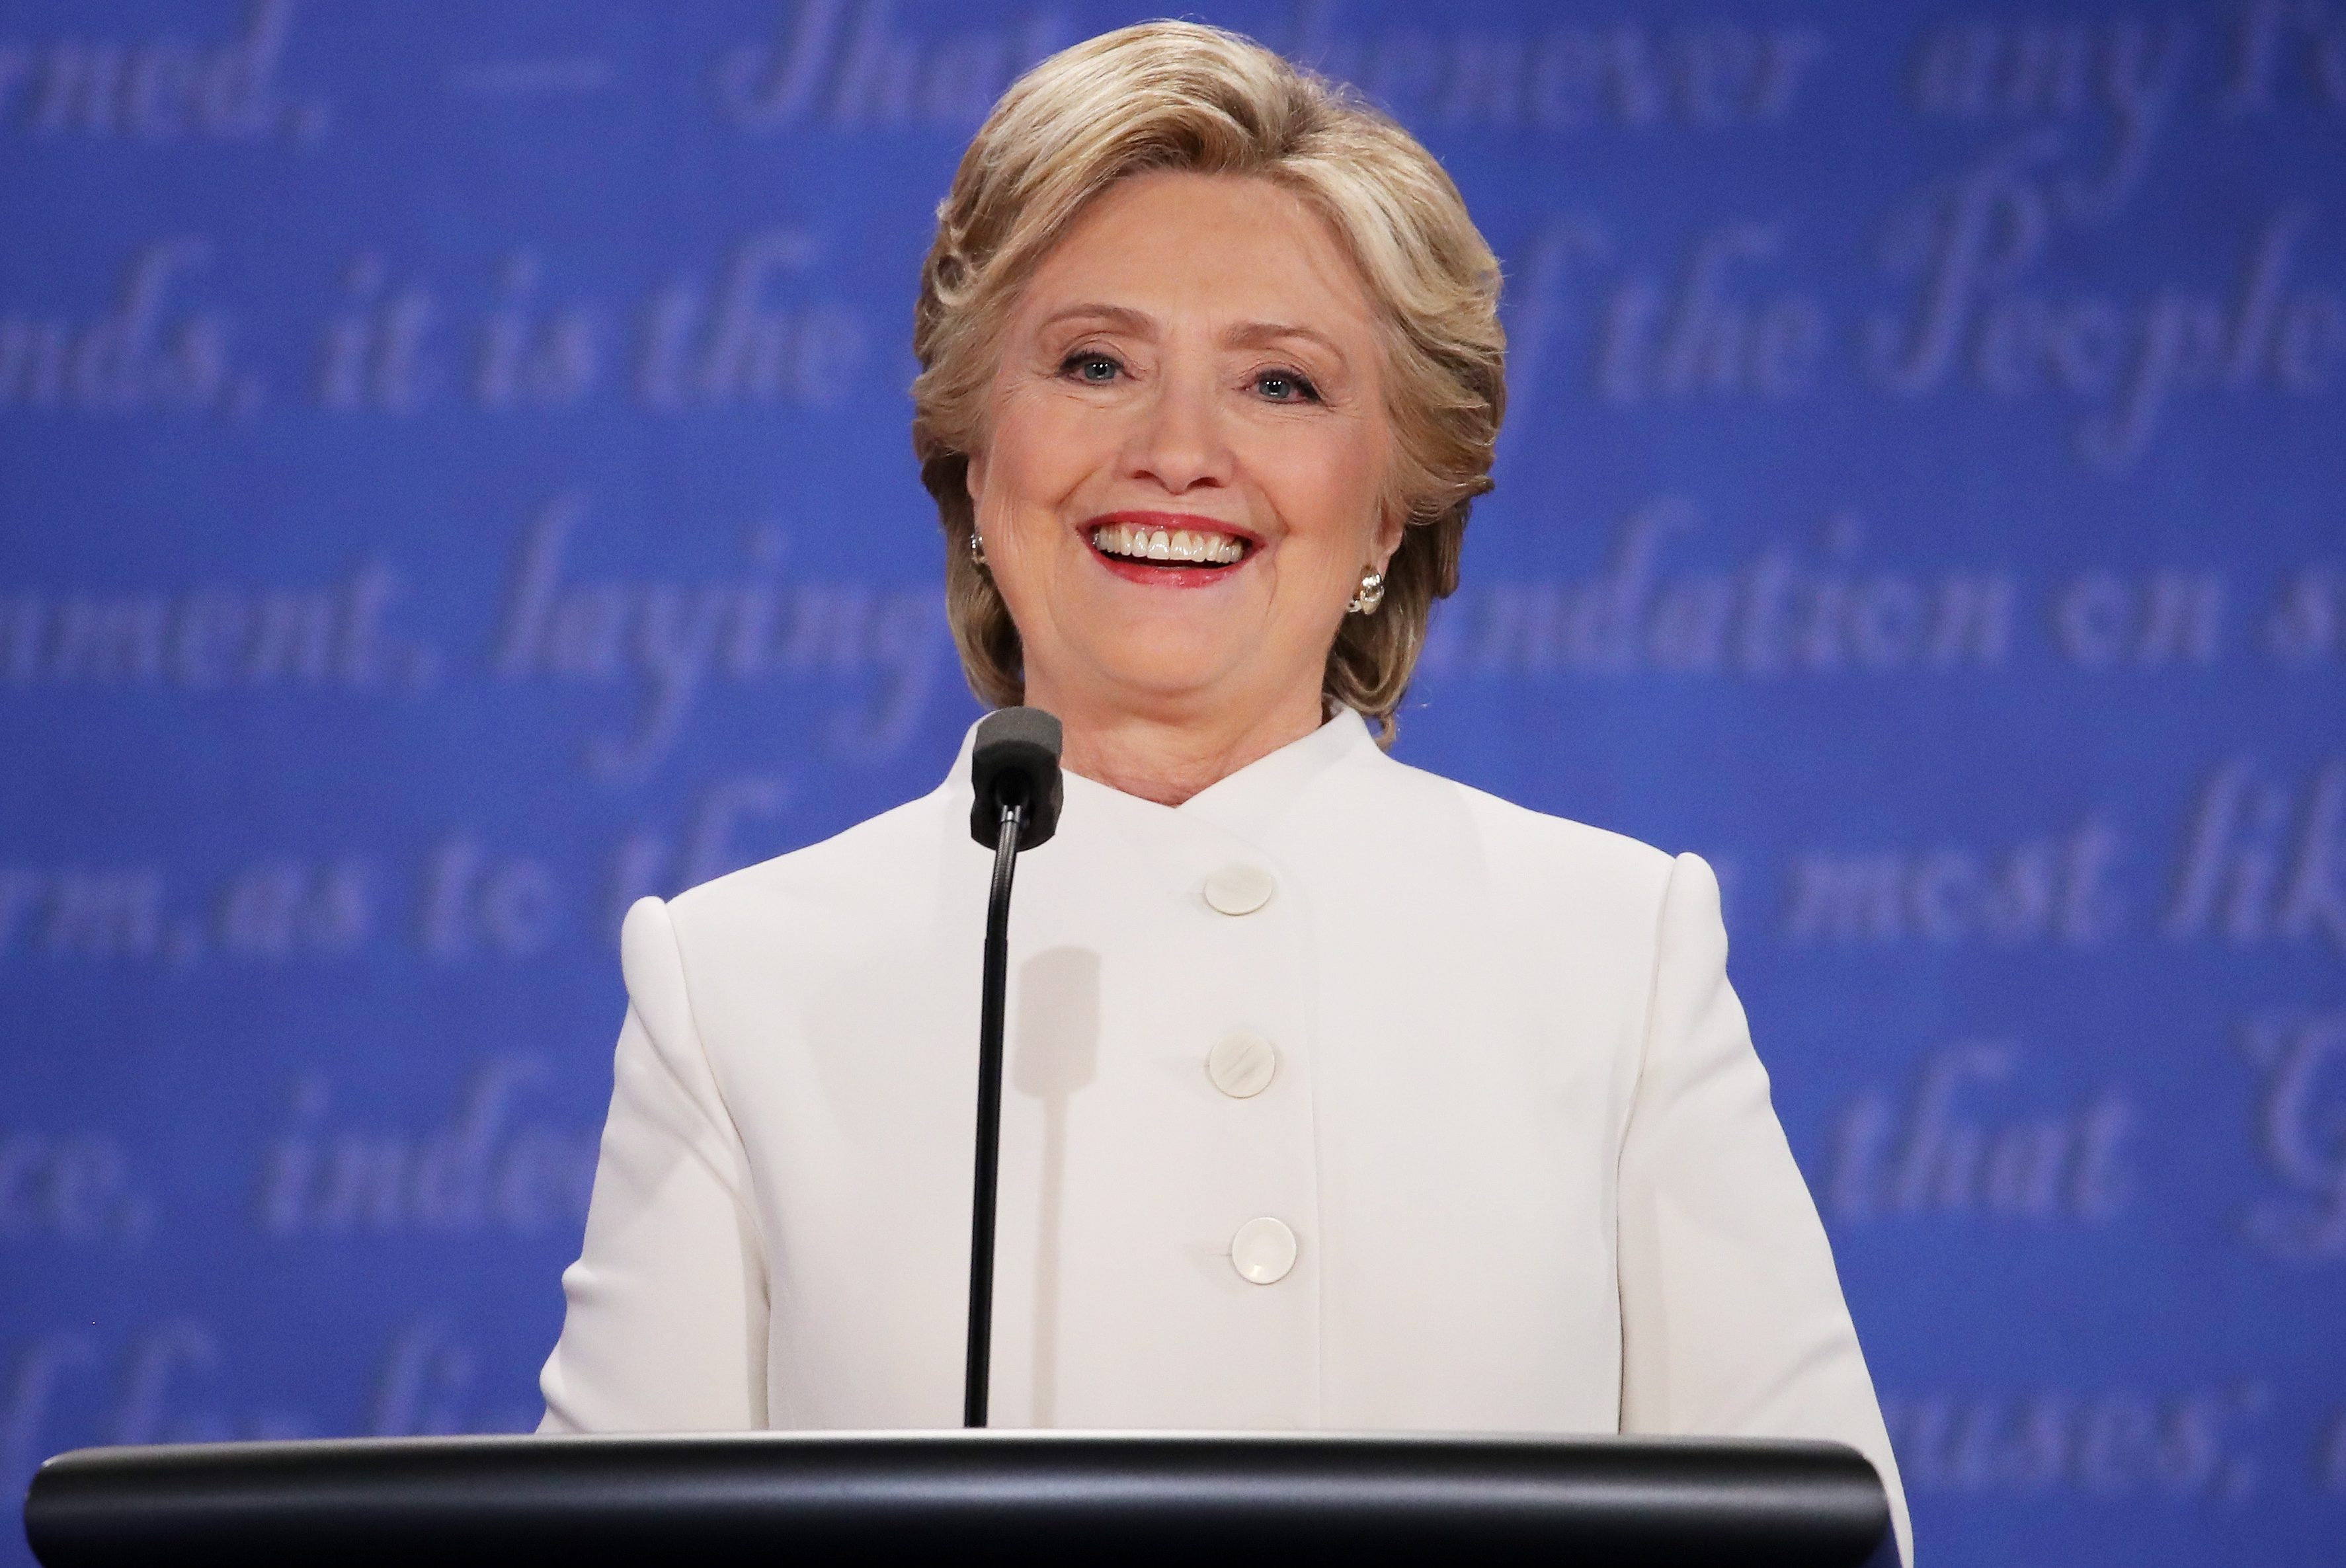 LAS VEGAS, NV - OCTOBER 19:  Democratic presidential nominee former Secretary of State Hillary Clinton smilels as she listens to Republican presidential nominee Donald Trump speak during the third U.S. presidential debate at the Thomas & Mack Center on October 19, 2016 in Las Vegas, Nevada. Tonight is the final debate ahead of Election Day on November 8.  (Photo by Drew Angerer/Getty Images)